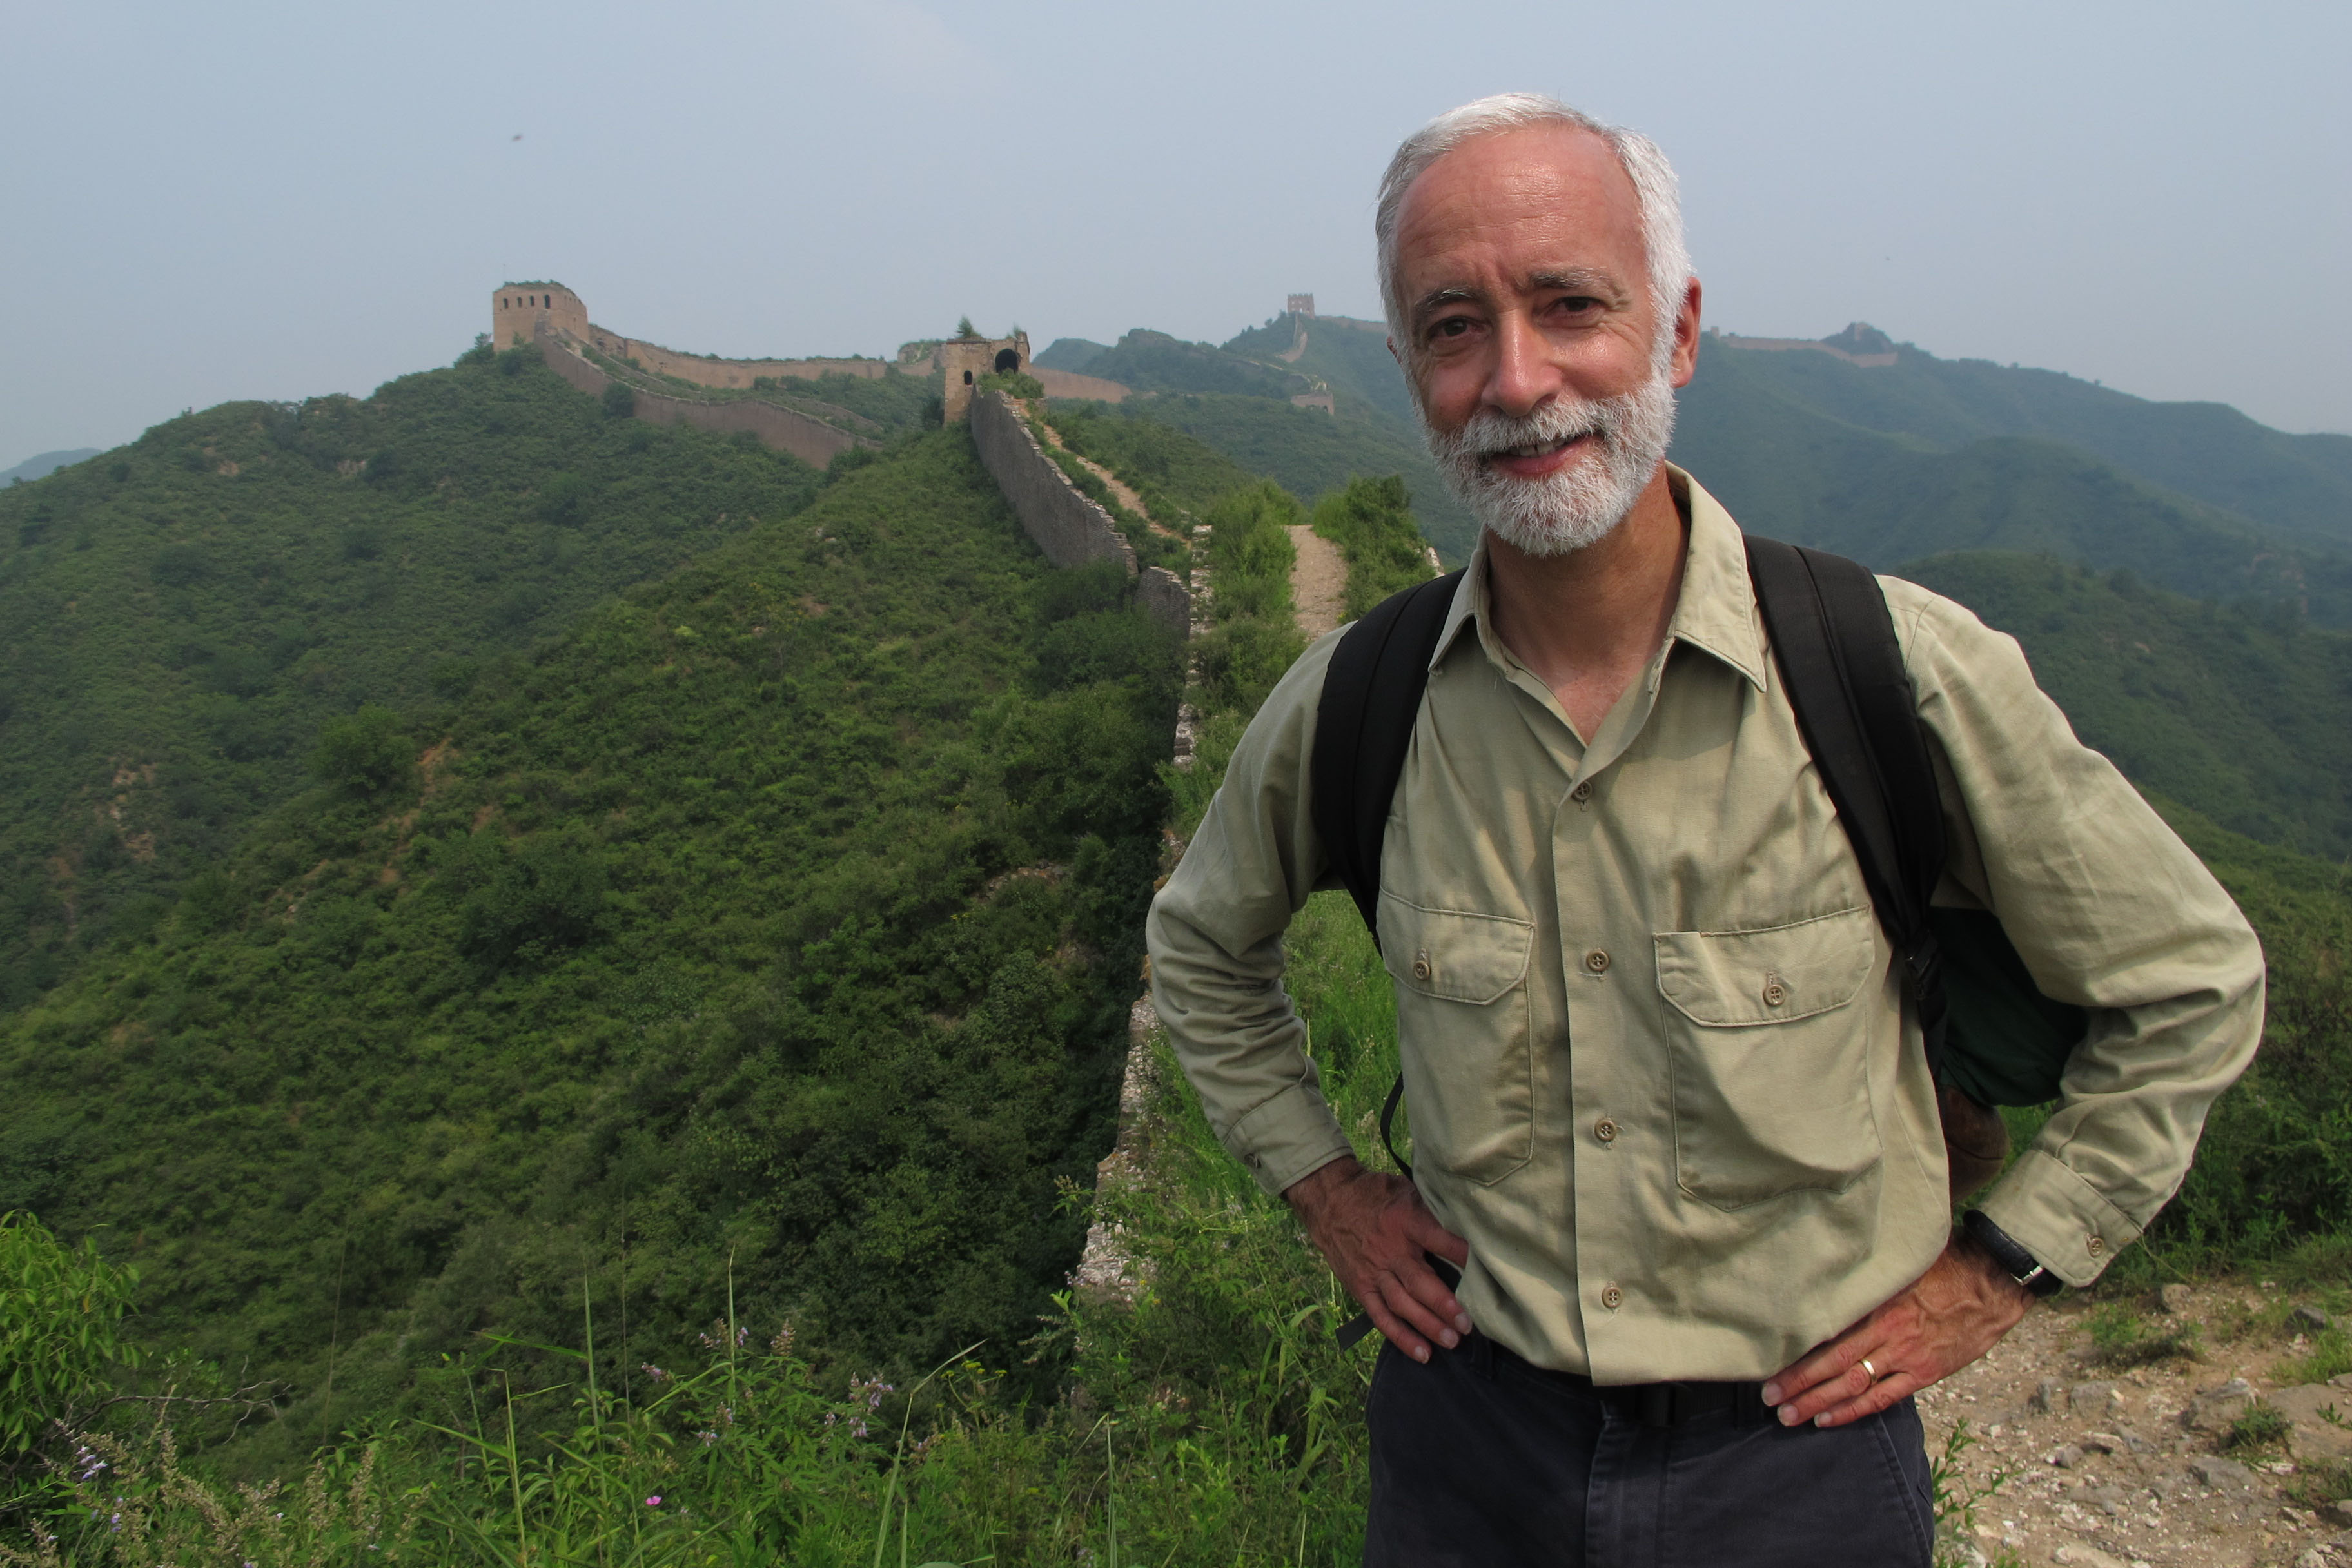 Adventurer Robert Peck recently at the Great Wall of China